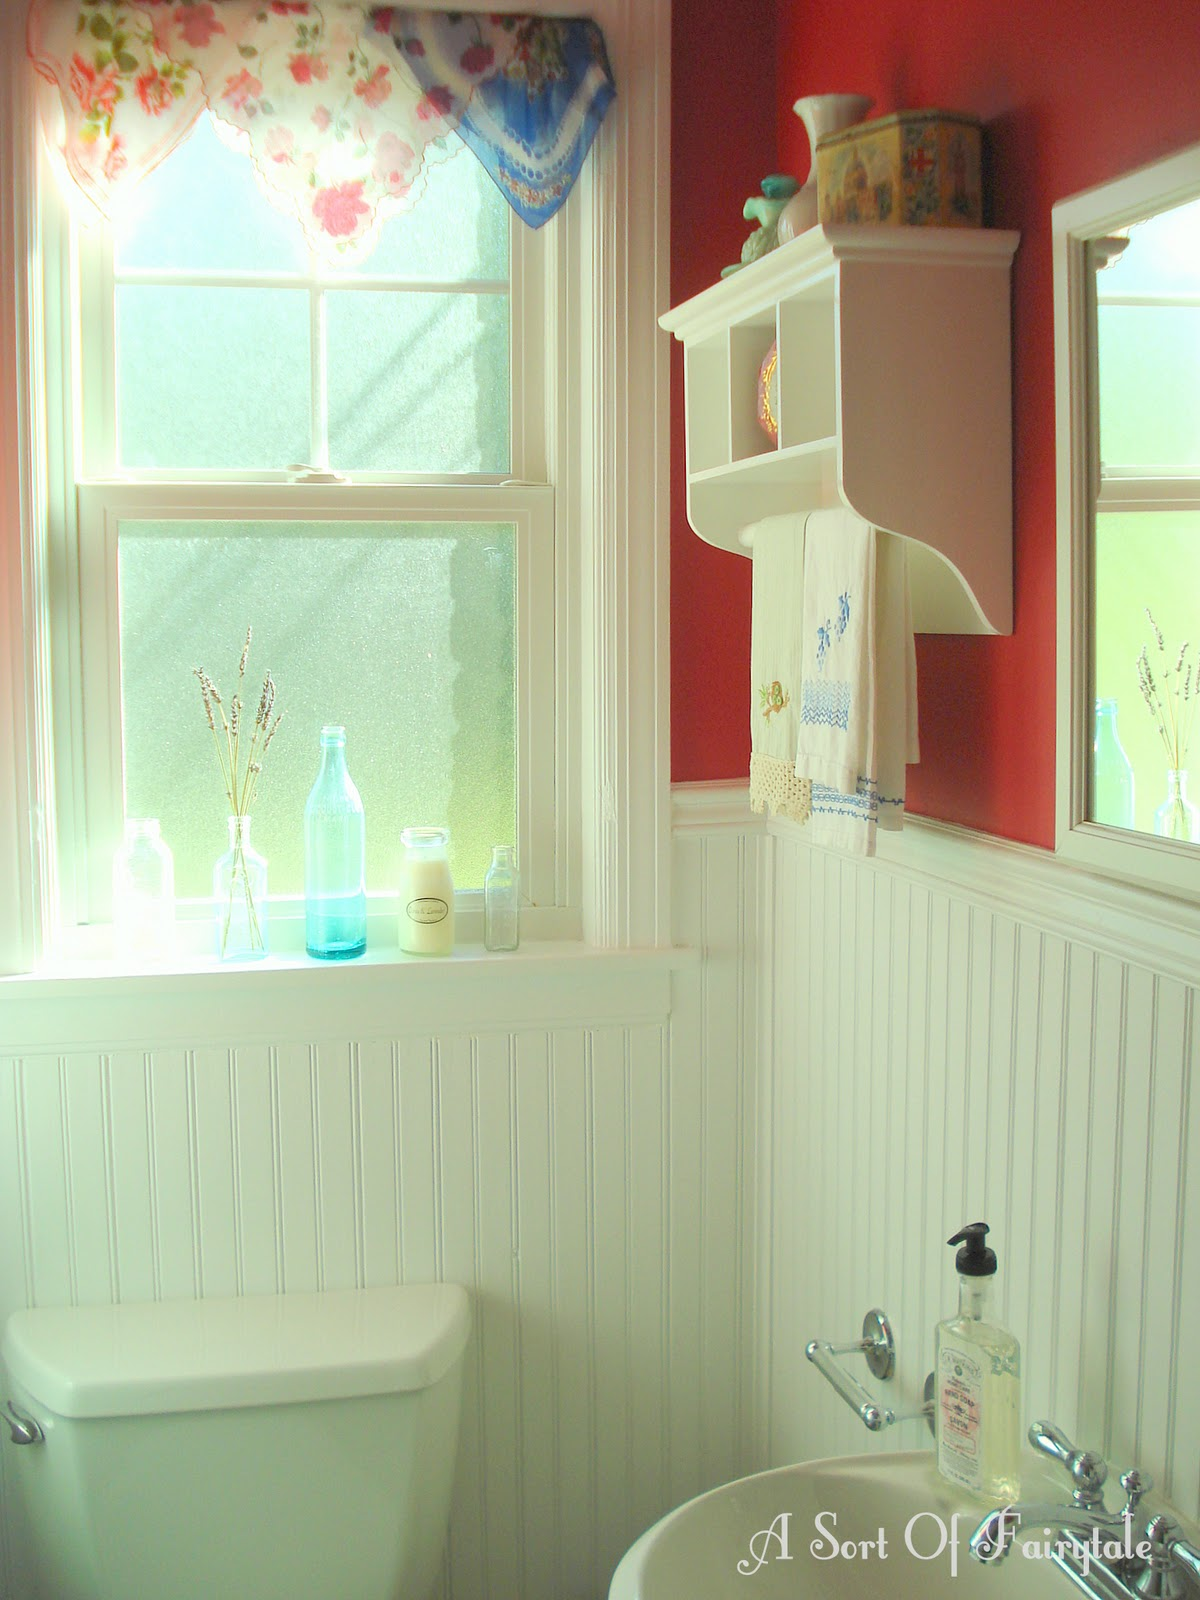 A Sort Of Fairytale: A {Sort Of} Fairytale Bathroom Makeover